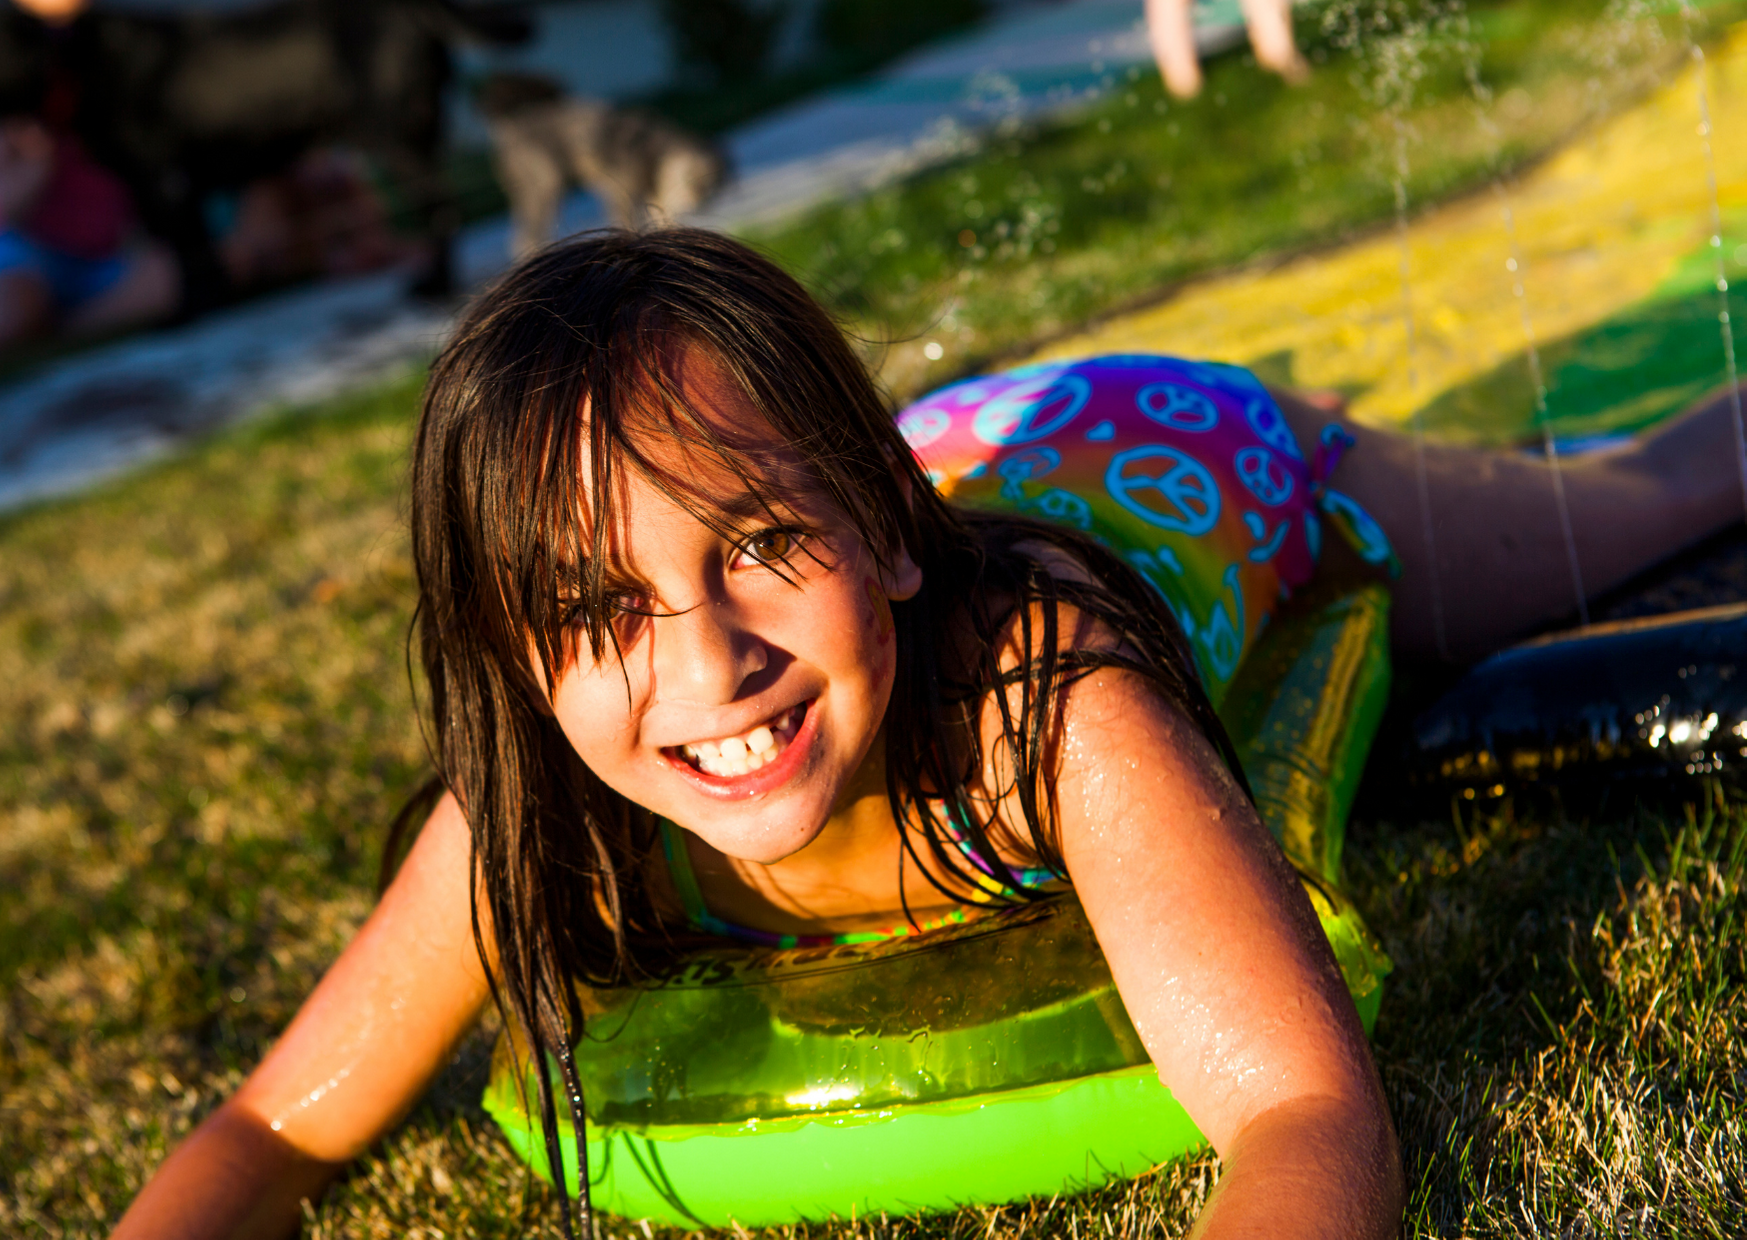 Kid having fun with the slip and slide